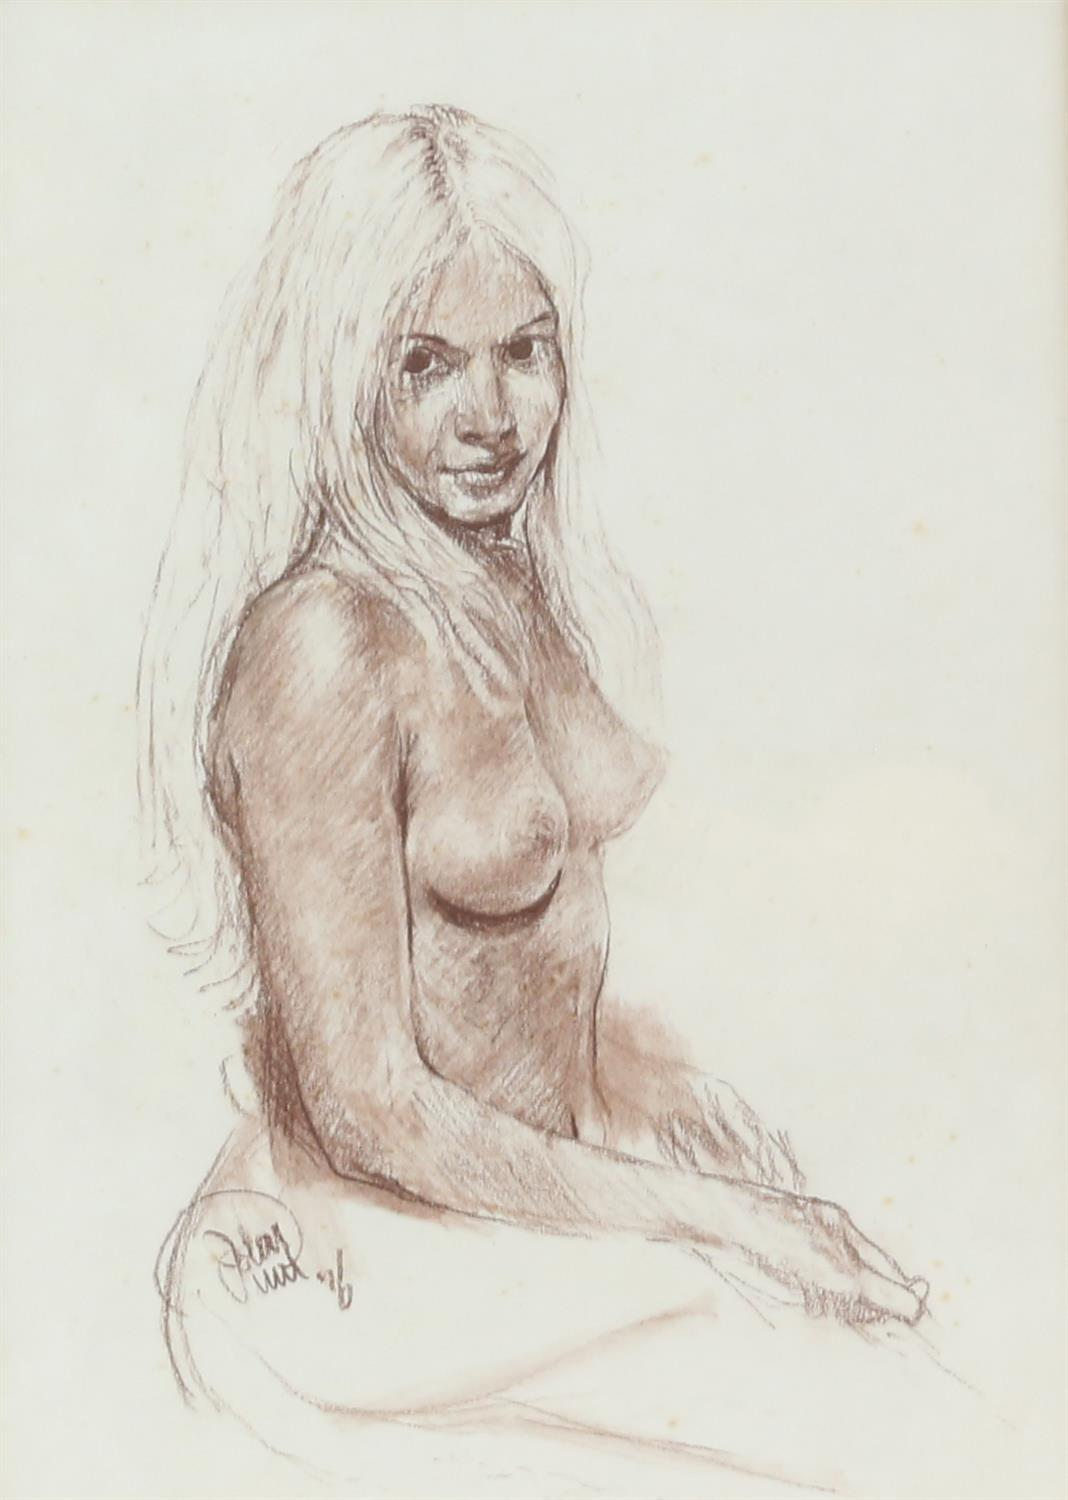 John Uht (British, b. 1924). 'Blonde Seated Nude'. Pastel 1976. Signed and dated lower left.